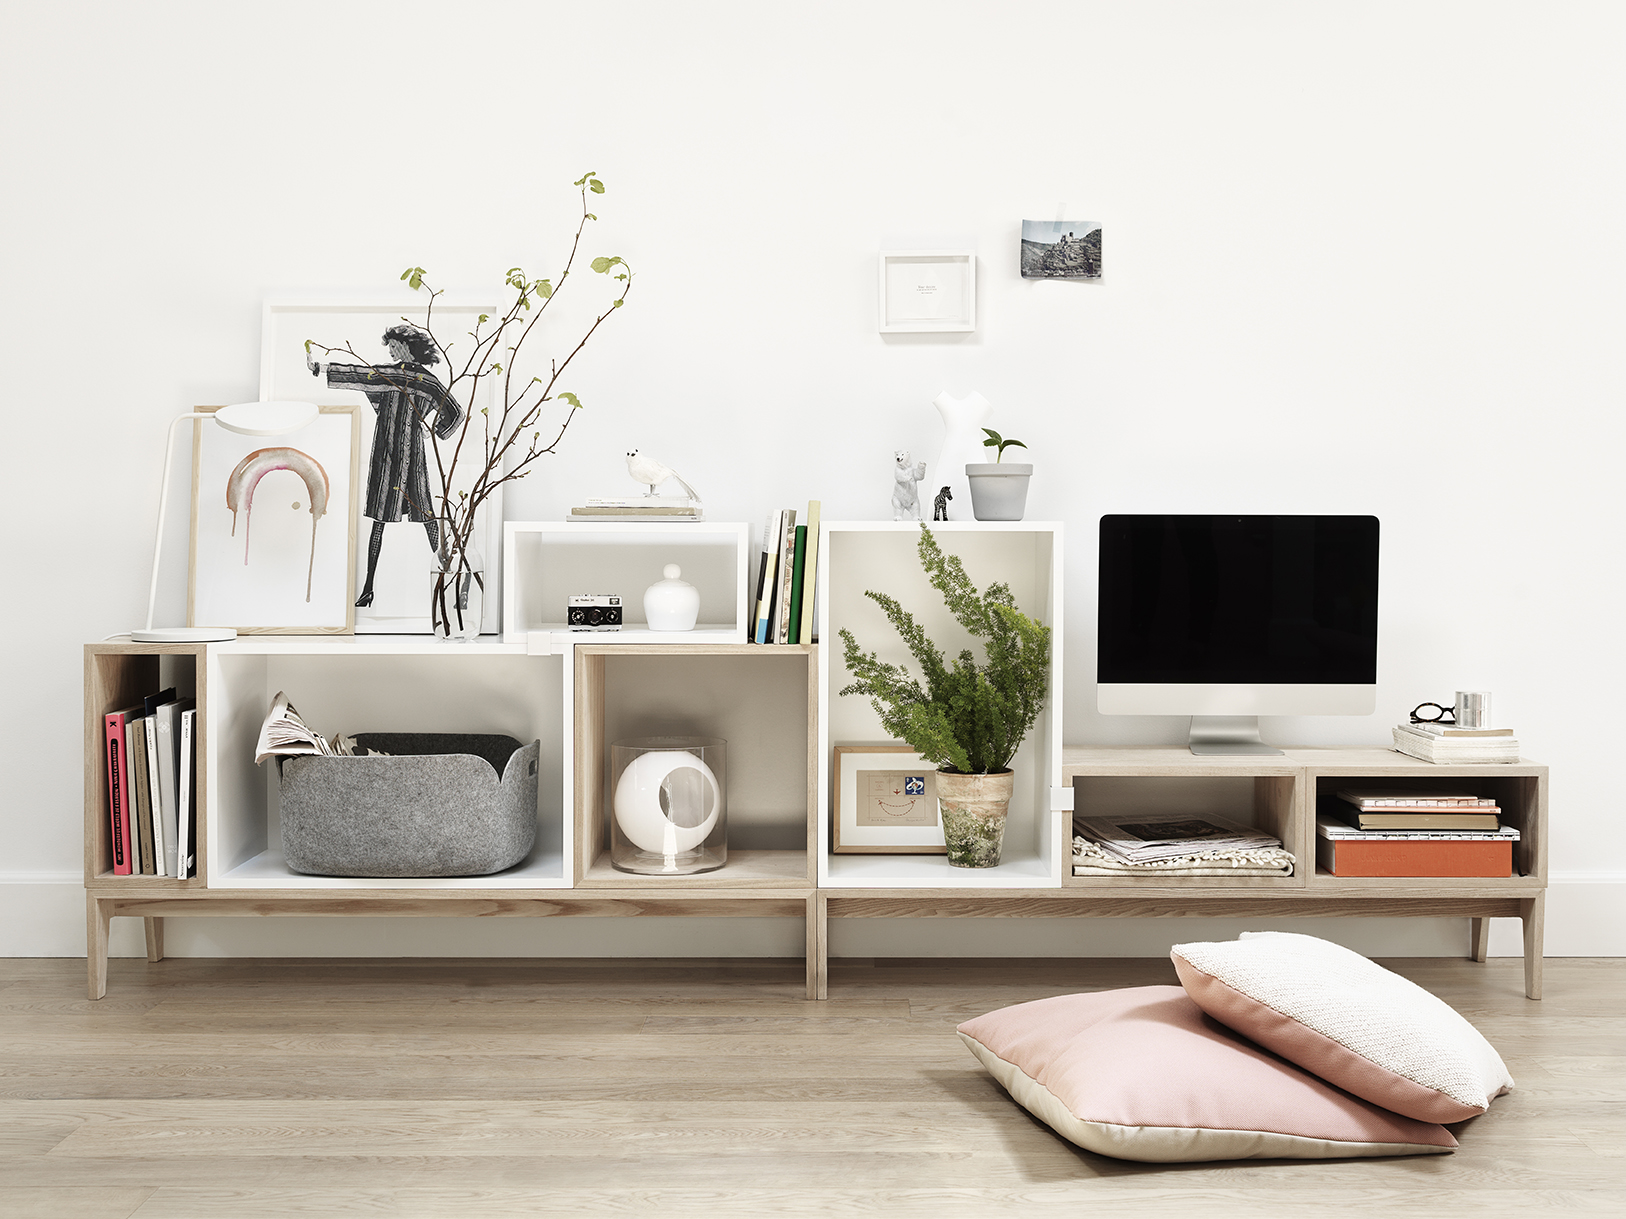 Muuto a New Perspective on Scandinavian Design scandinavian design Muuto a New Perspective on Scandinavian Design stacked tv setup